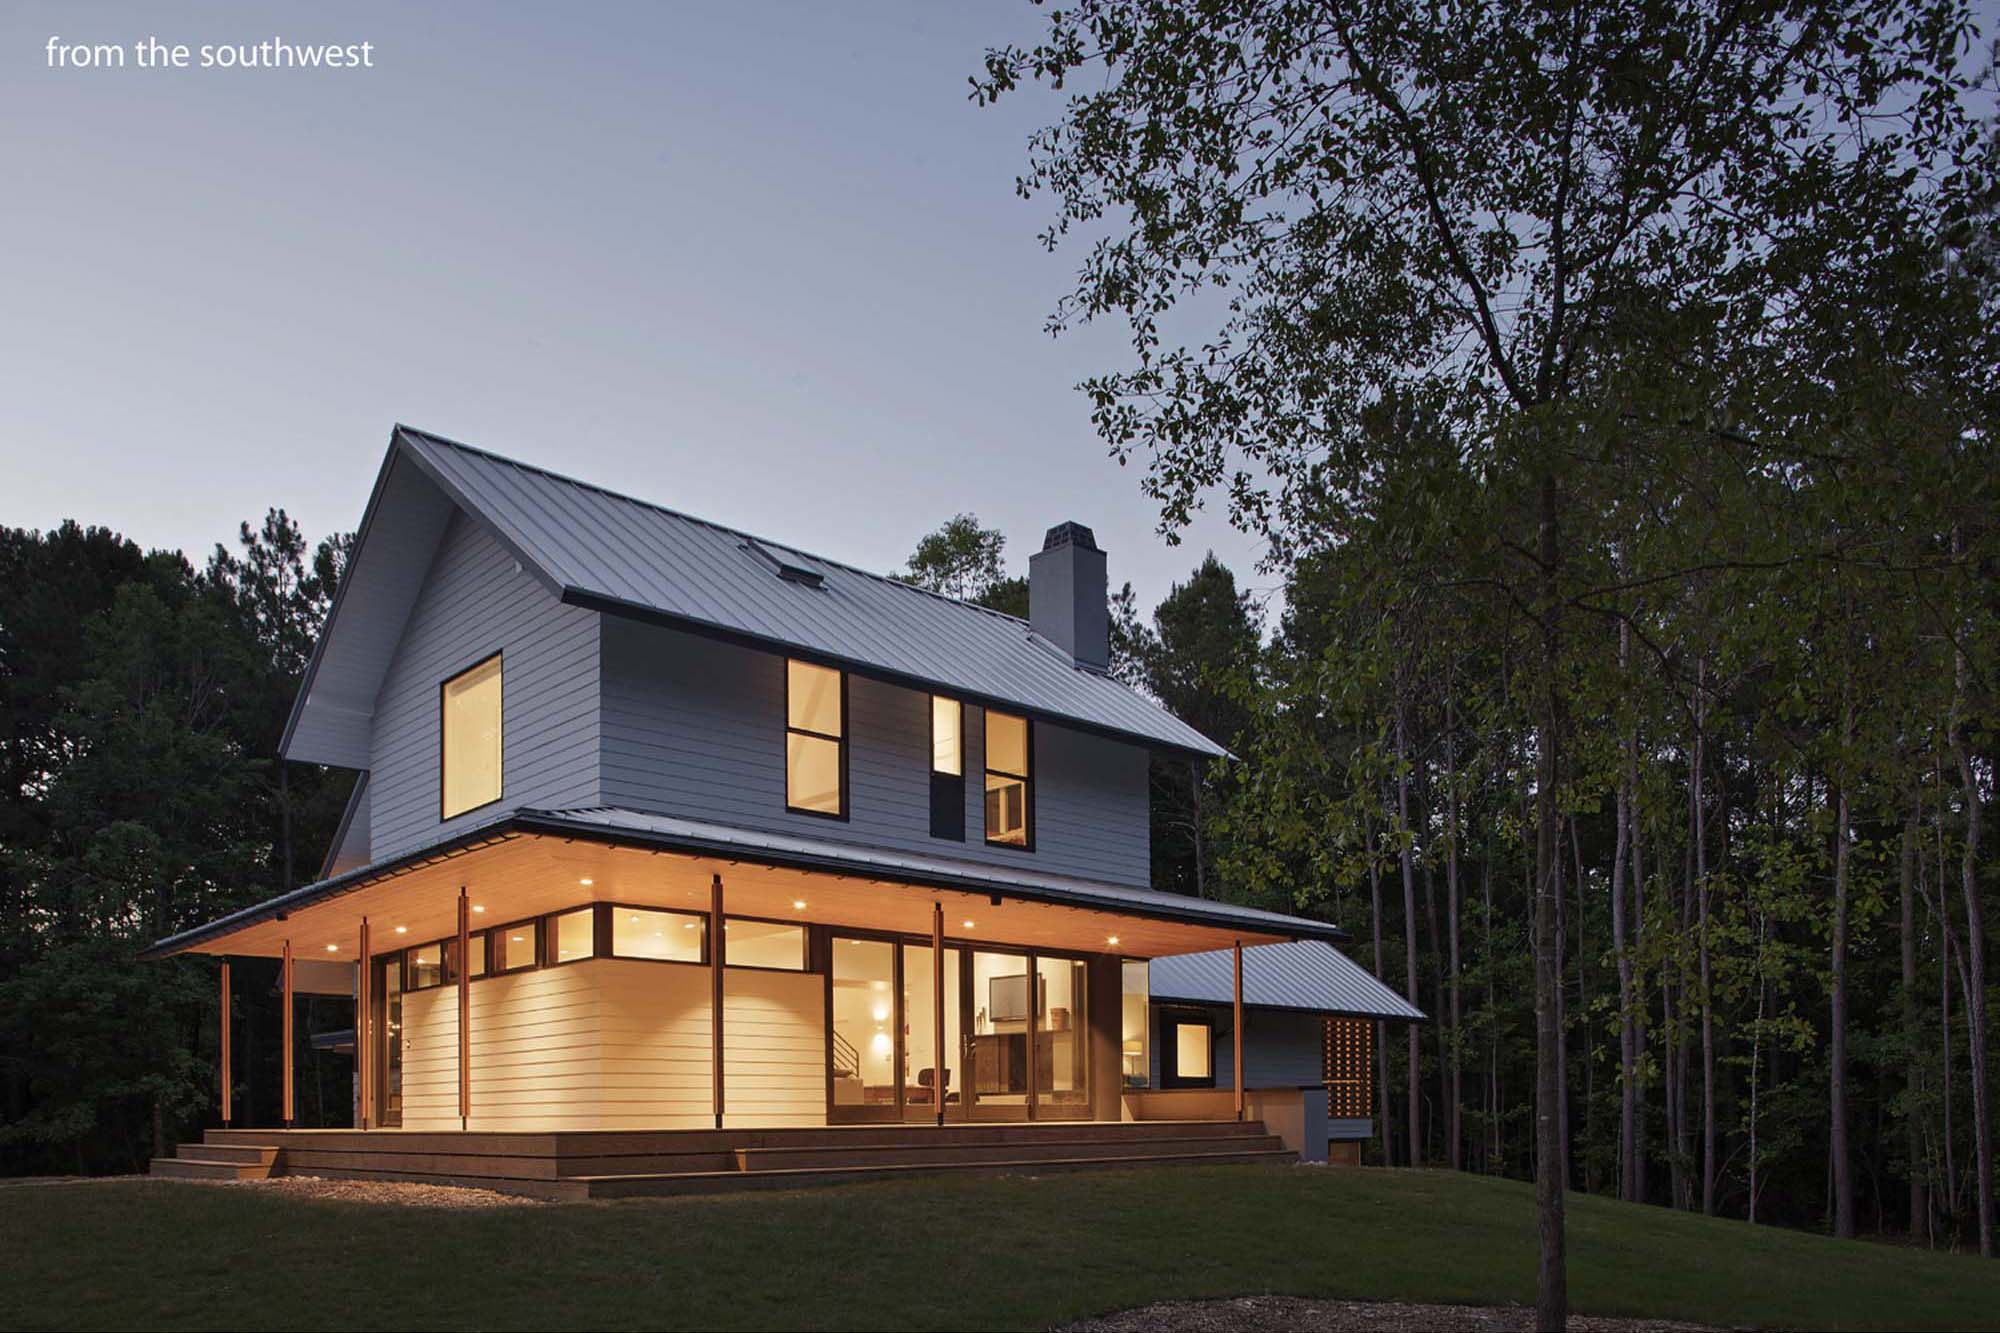 Farmhouse architect magazine in situ studio wake forest north carolina the united states - Modern home pictures ...